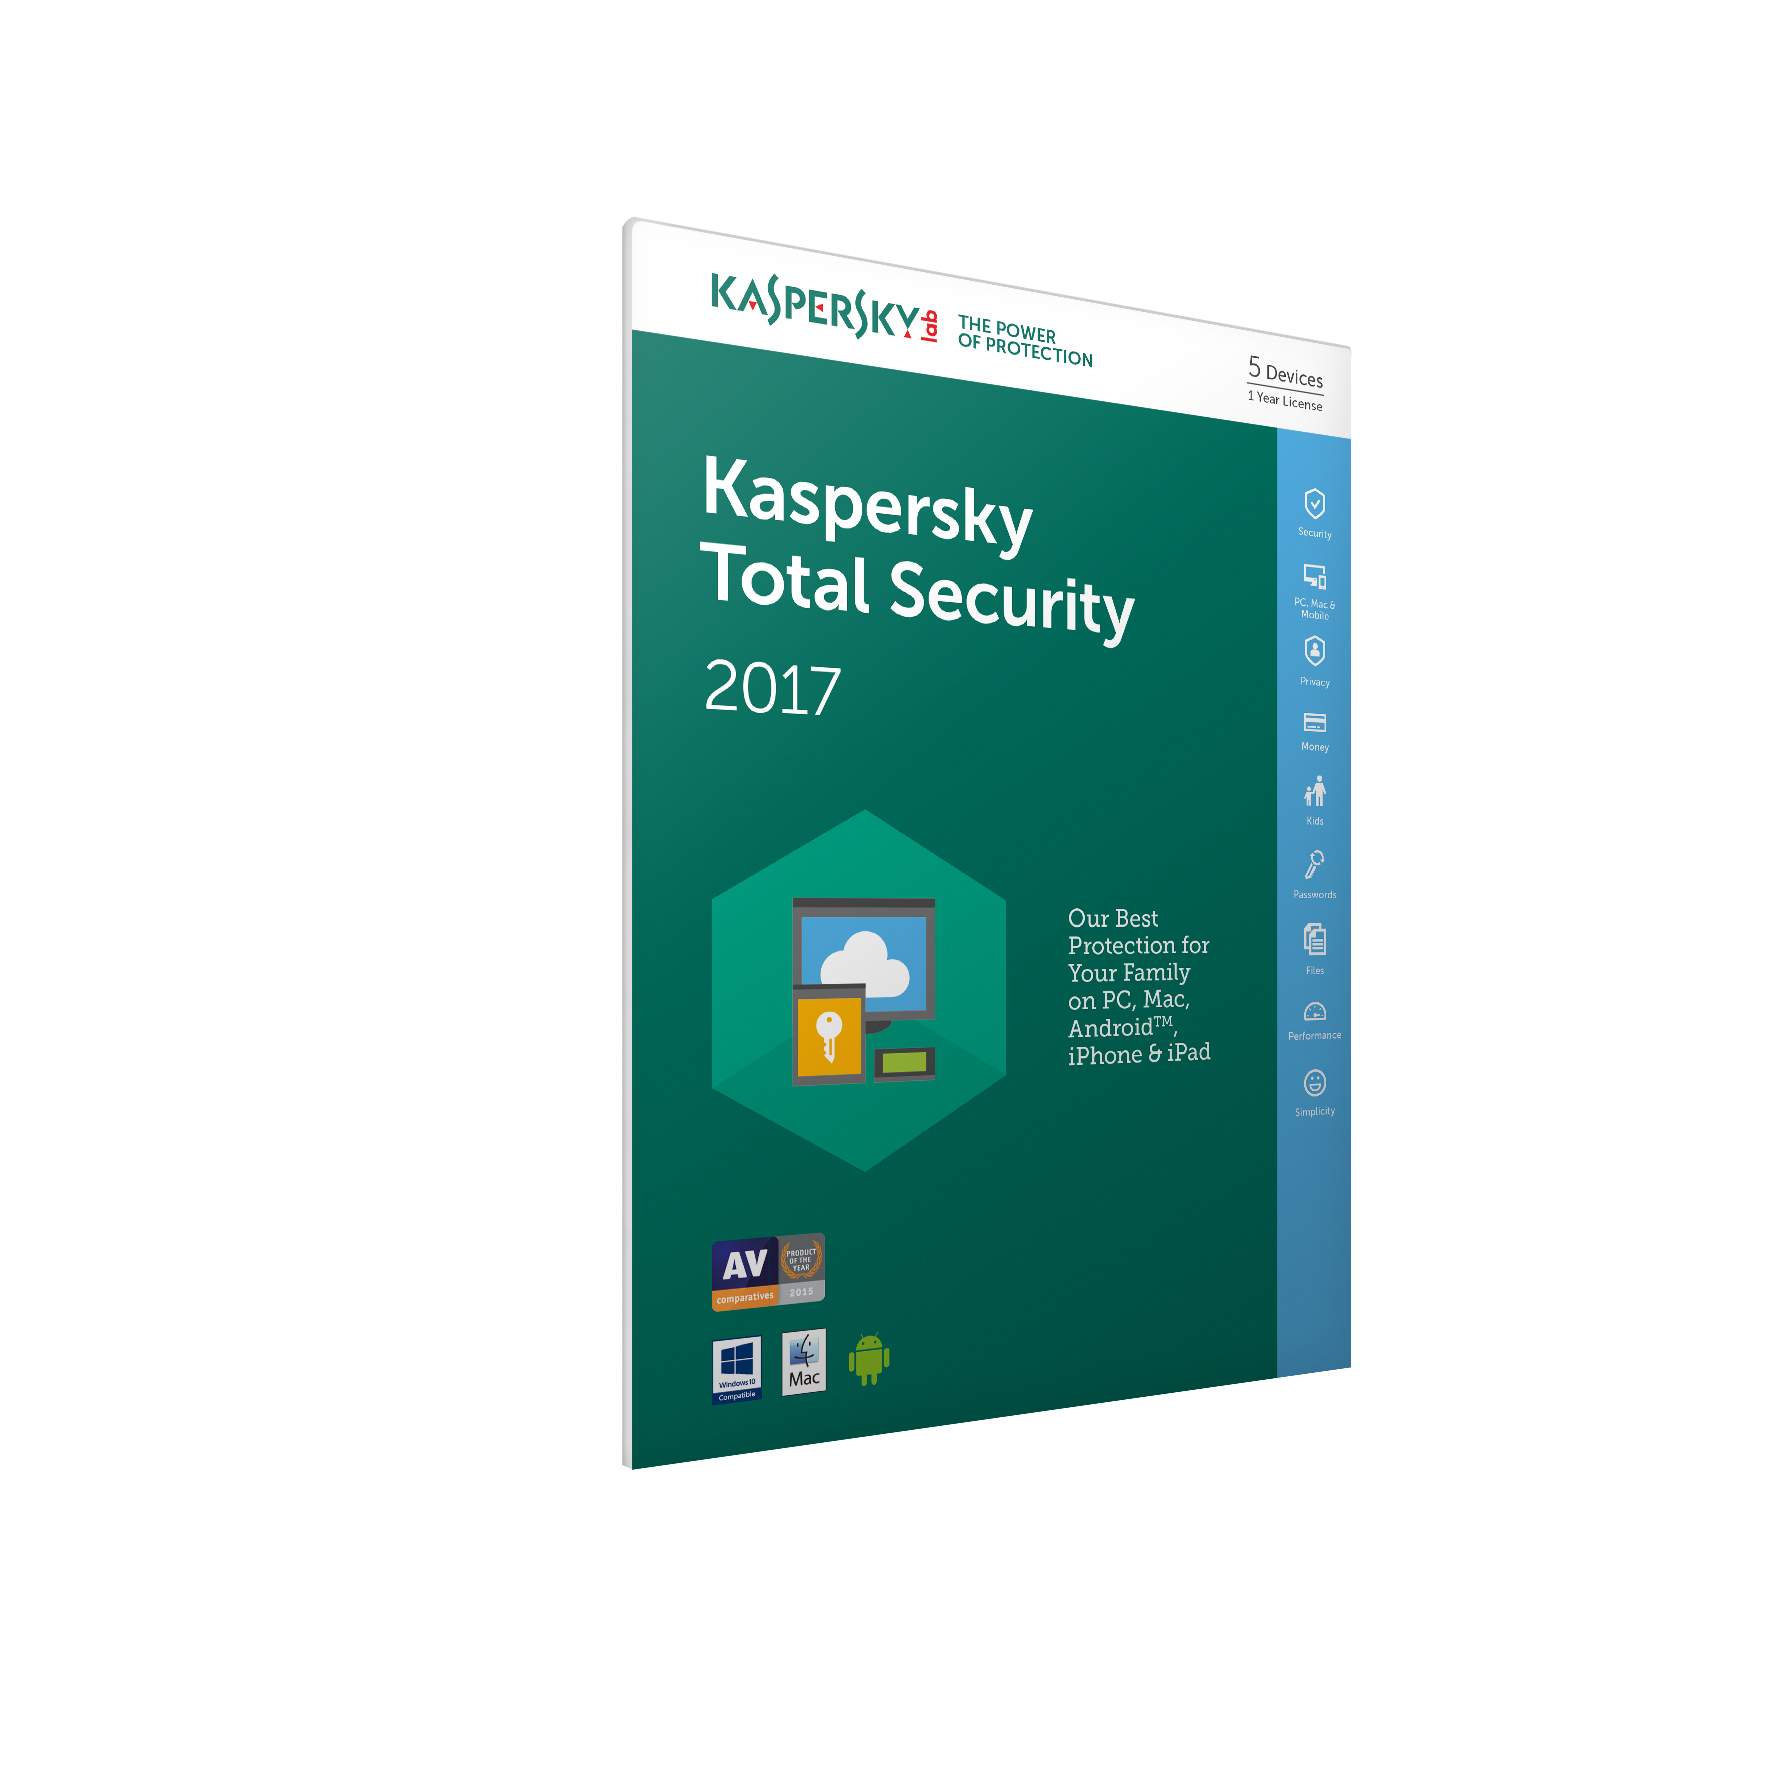 Kaspersky Lab Kaspersky Total Security 2017 - 5 Devices 1 Year (Frustration Free Packaging)